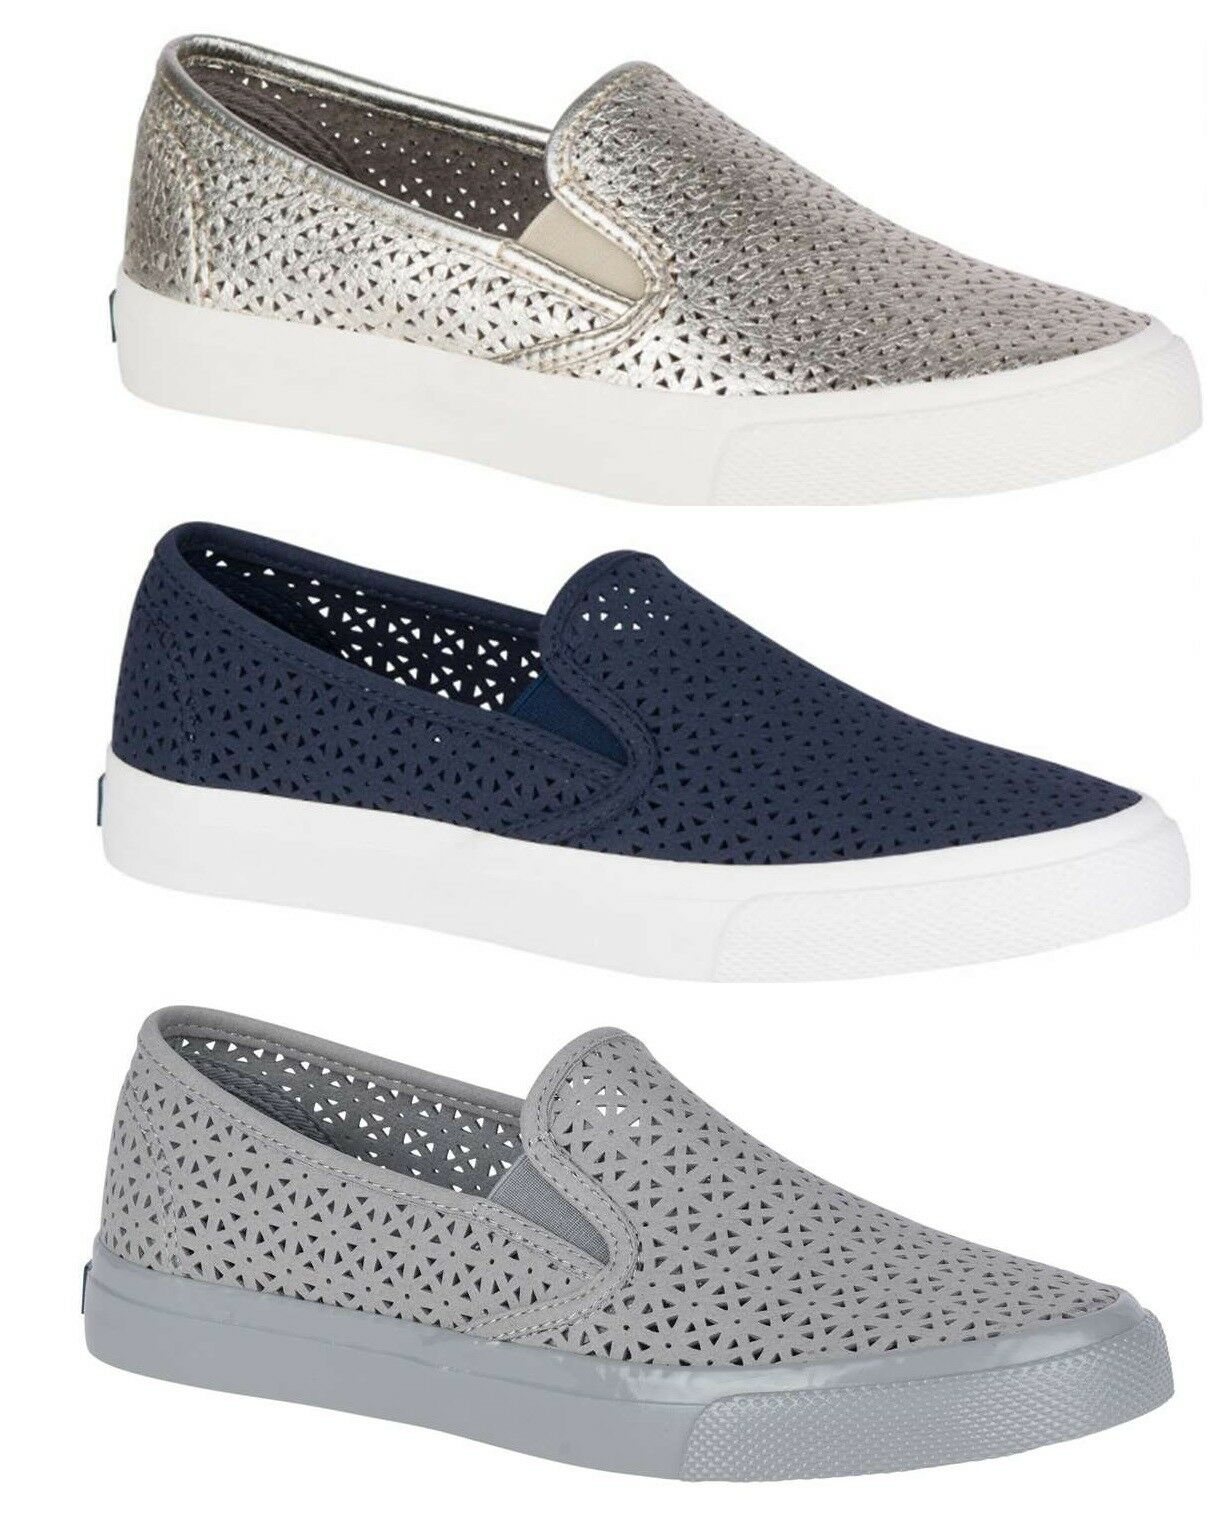 Sperry Women's Seaside Nautical Perforated Perforated Perforated Suede Slip On Loafers Boat shoes NEW 9848a9